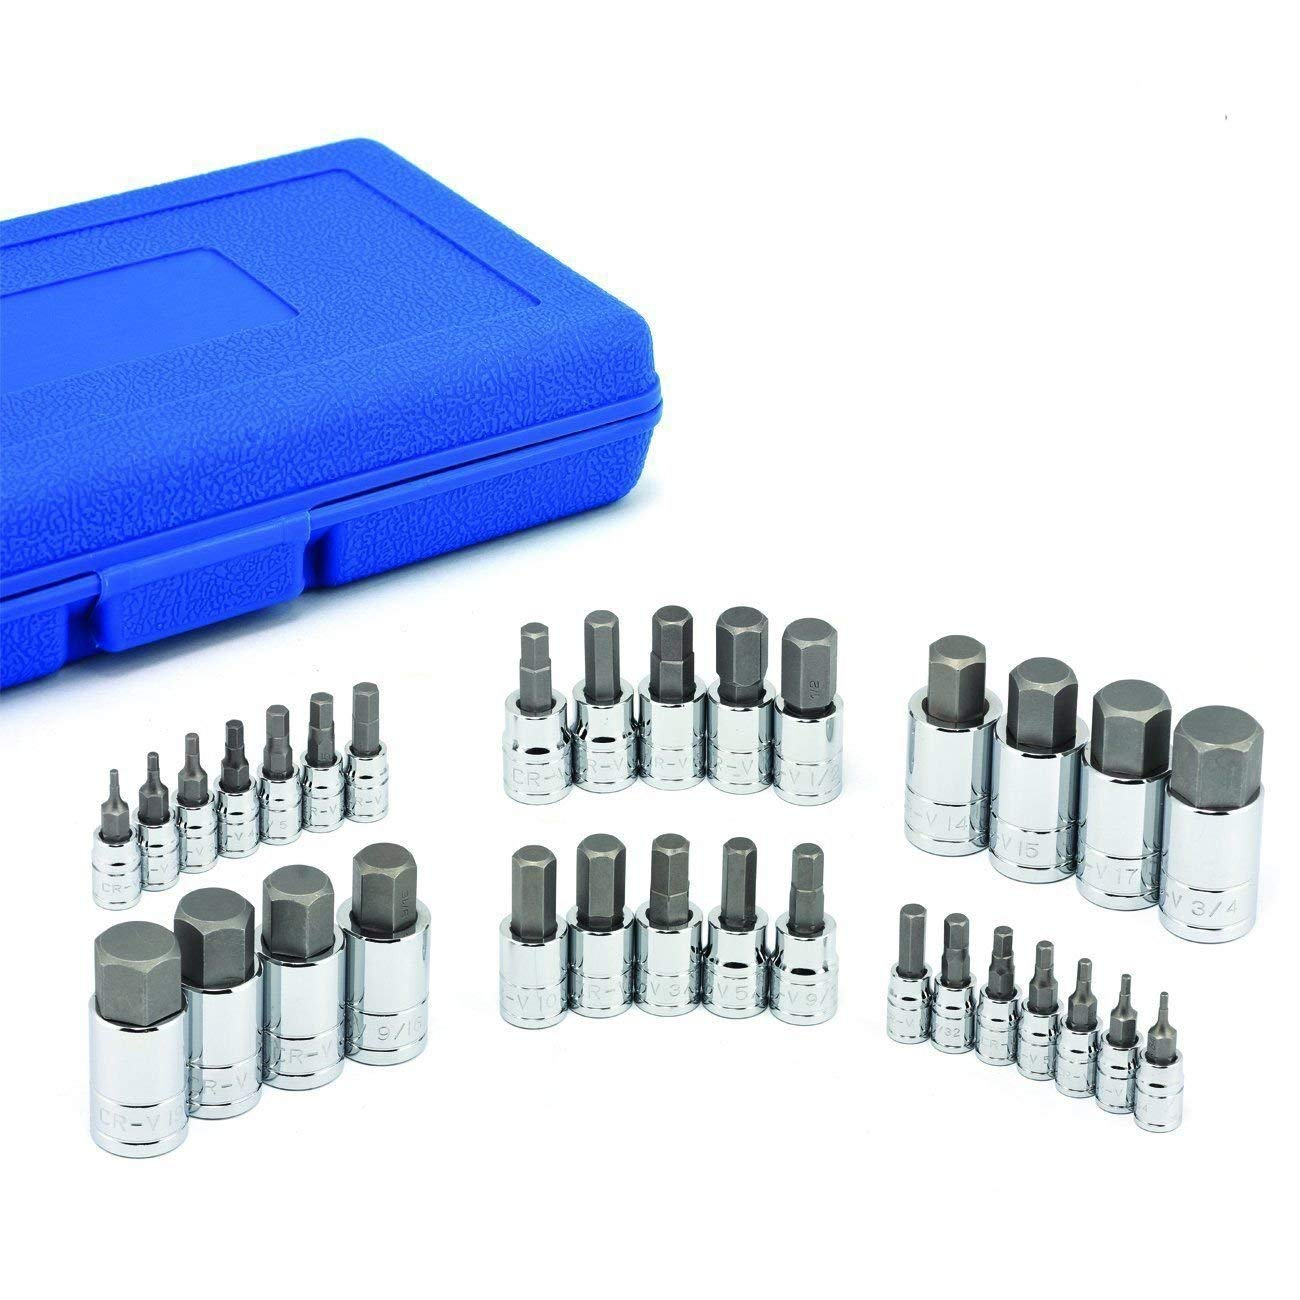 "ESKALEX>>3/8"" 1/2"" DR DRIVE ALLEN WRENCH BIT KIT HEX KEY SOCKET TOOL SAE AND METRIC SET And The set includes: Sockets in SAE sizes: - 1/4-inch drive sockets - 5/64, 3/32, 1/8, 5/32, 3/16, 7/32"